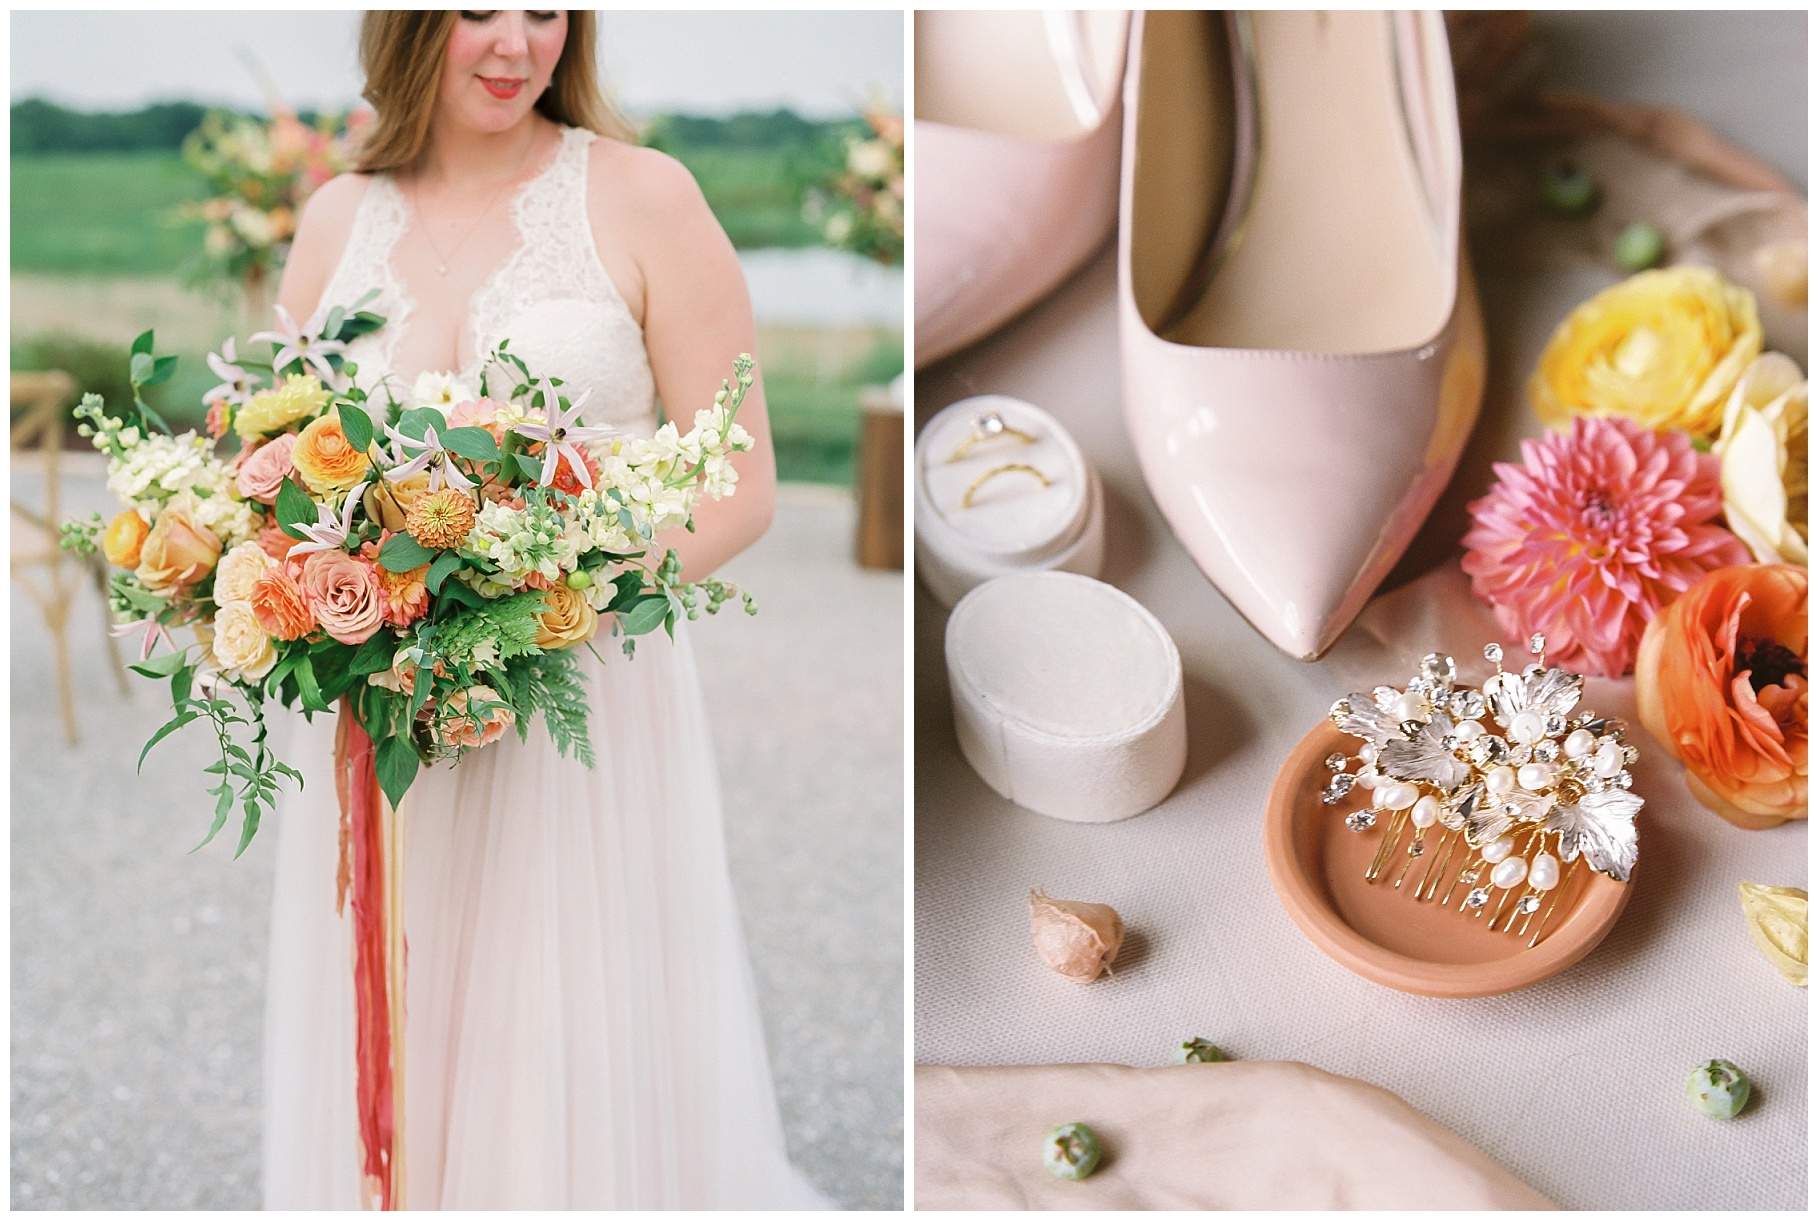 Late Summer Wedding With Pastel Toned Soiree at Blue Bell Farm by Kelsi Kliethermes Photography Best Columbia Missouri Wedding Photographer_0068.jpg